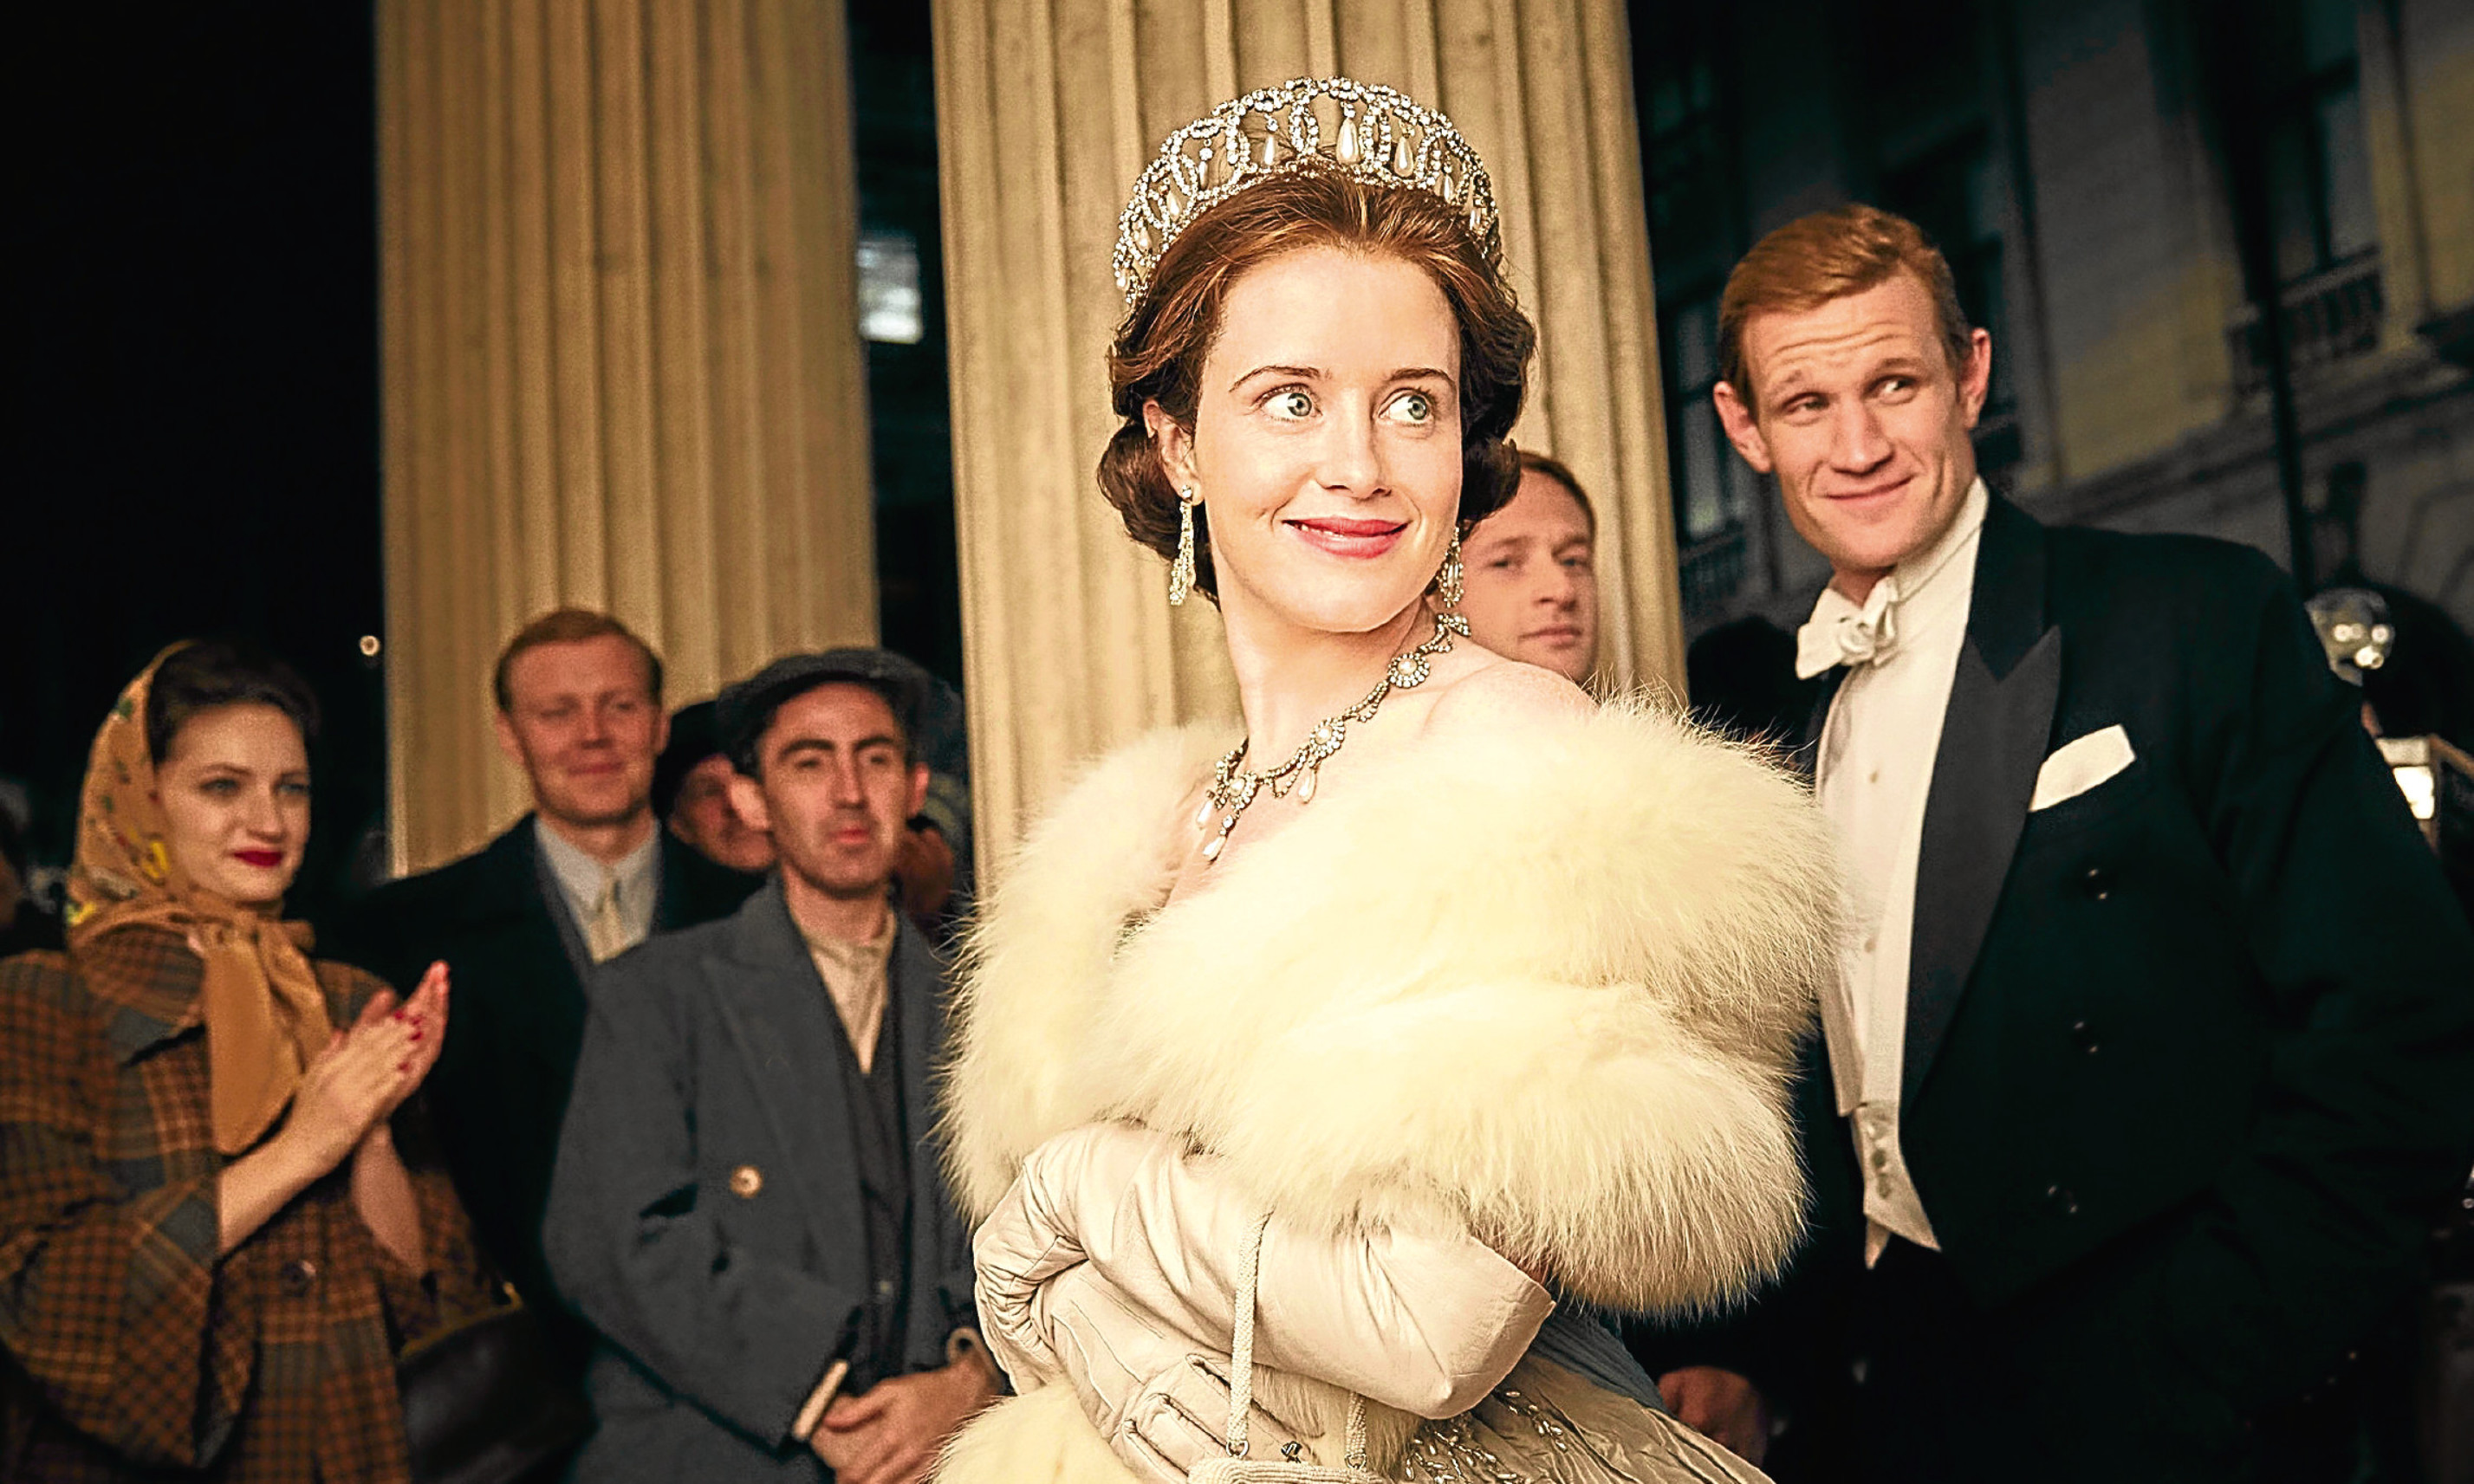 Claire Foy and Matt Smith in The Crown, which has got Lucy hooked.